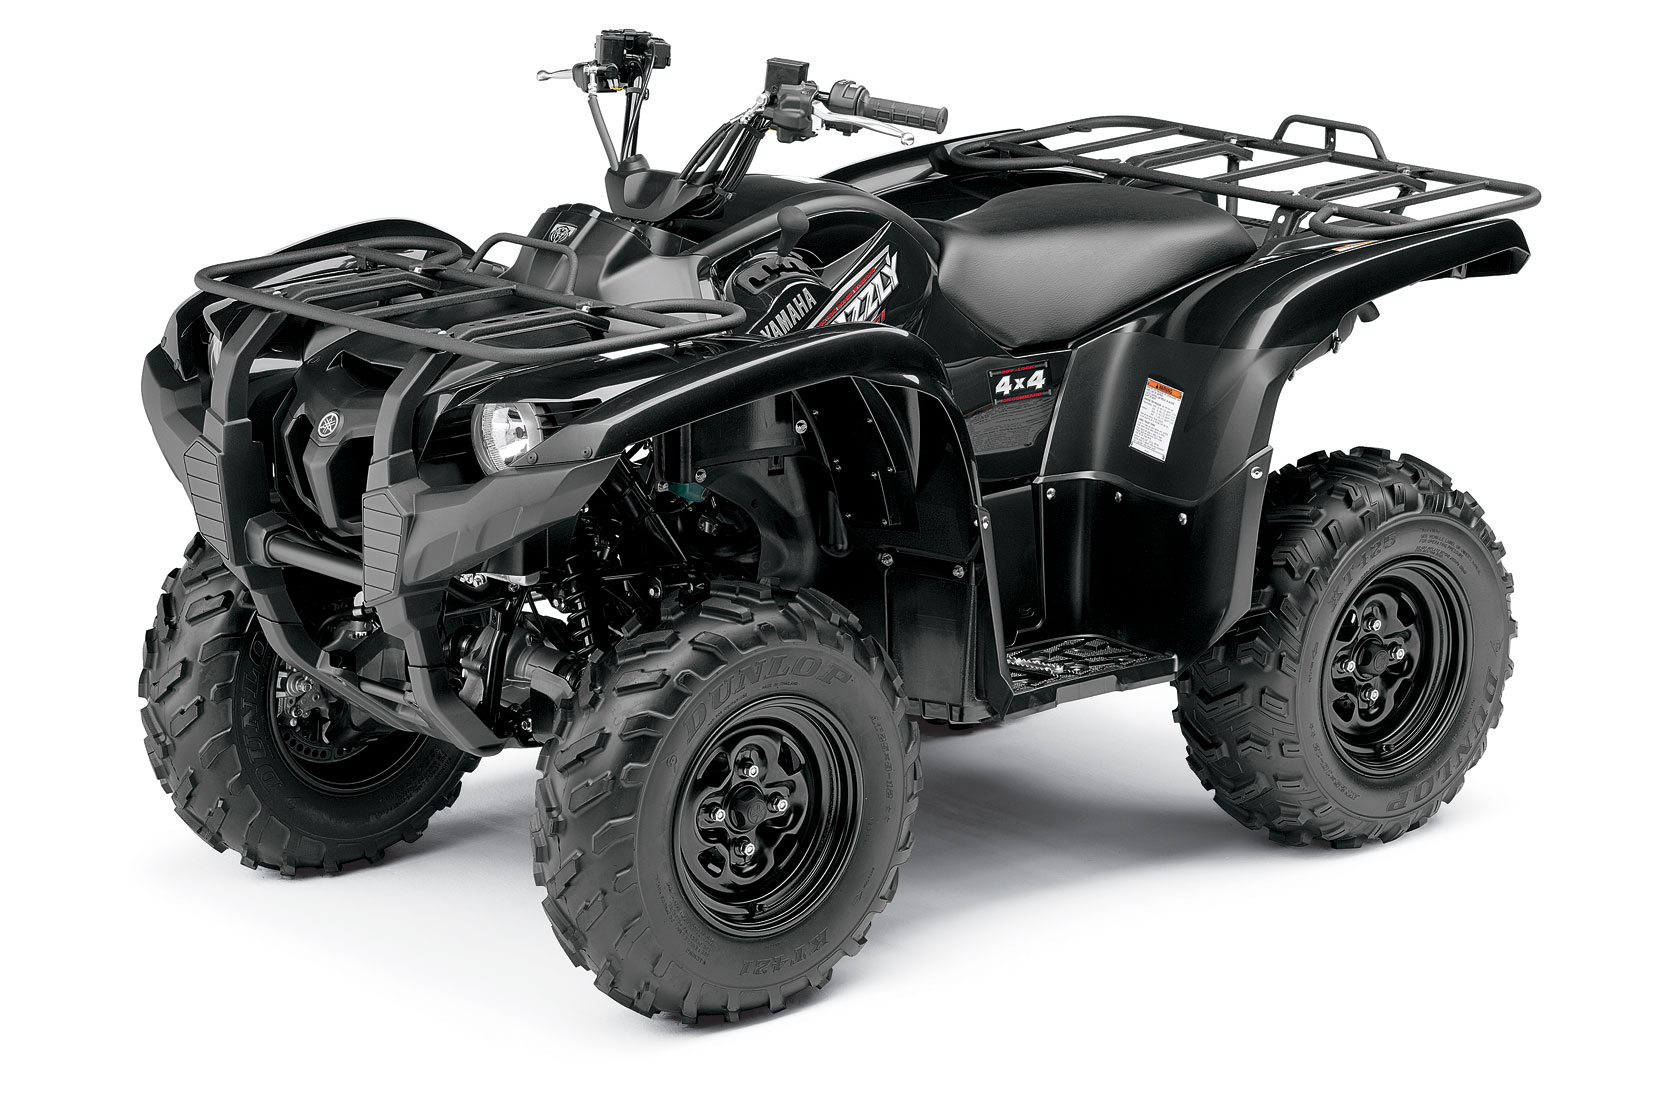 2009 yamaha grizzly 550 fi eps for Yamaha grizzly atv